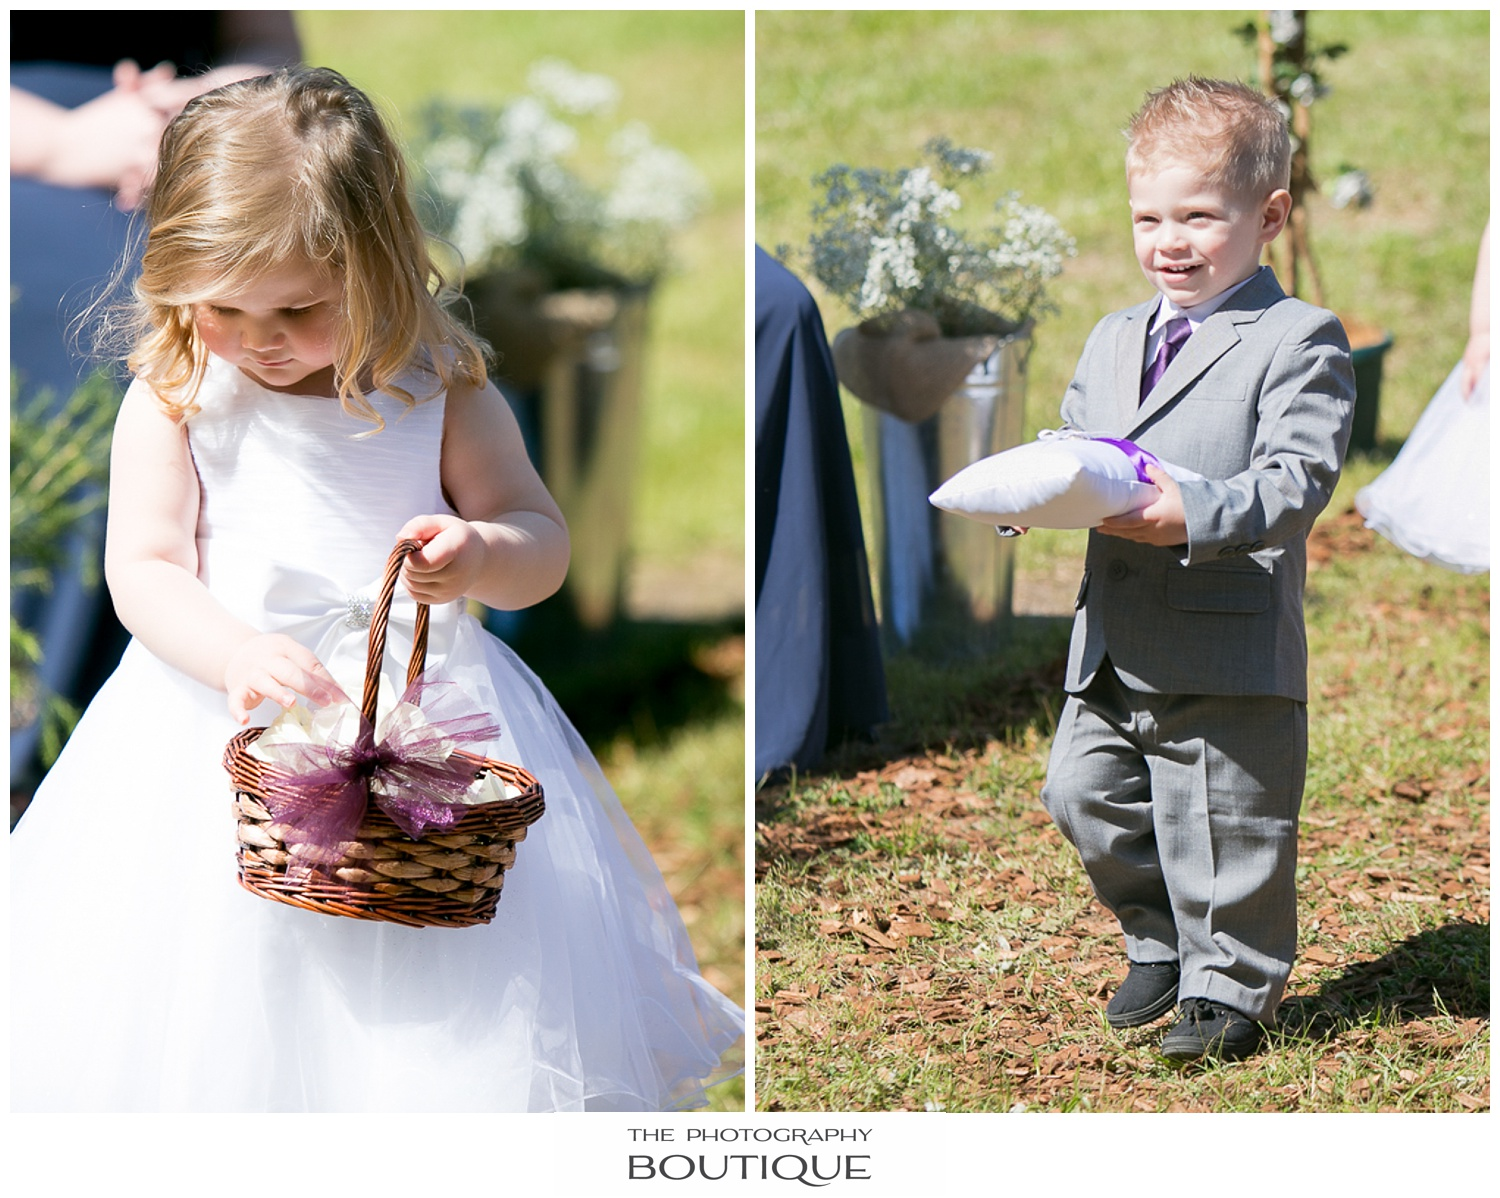 flower girl and paigeboy walking down the aisle